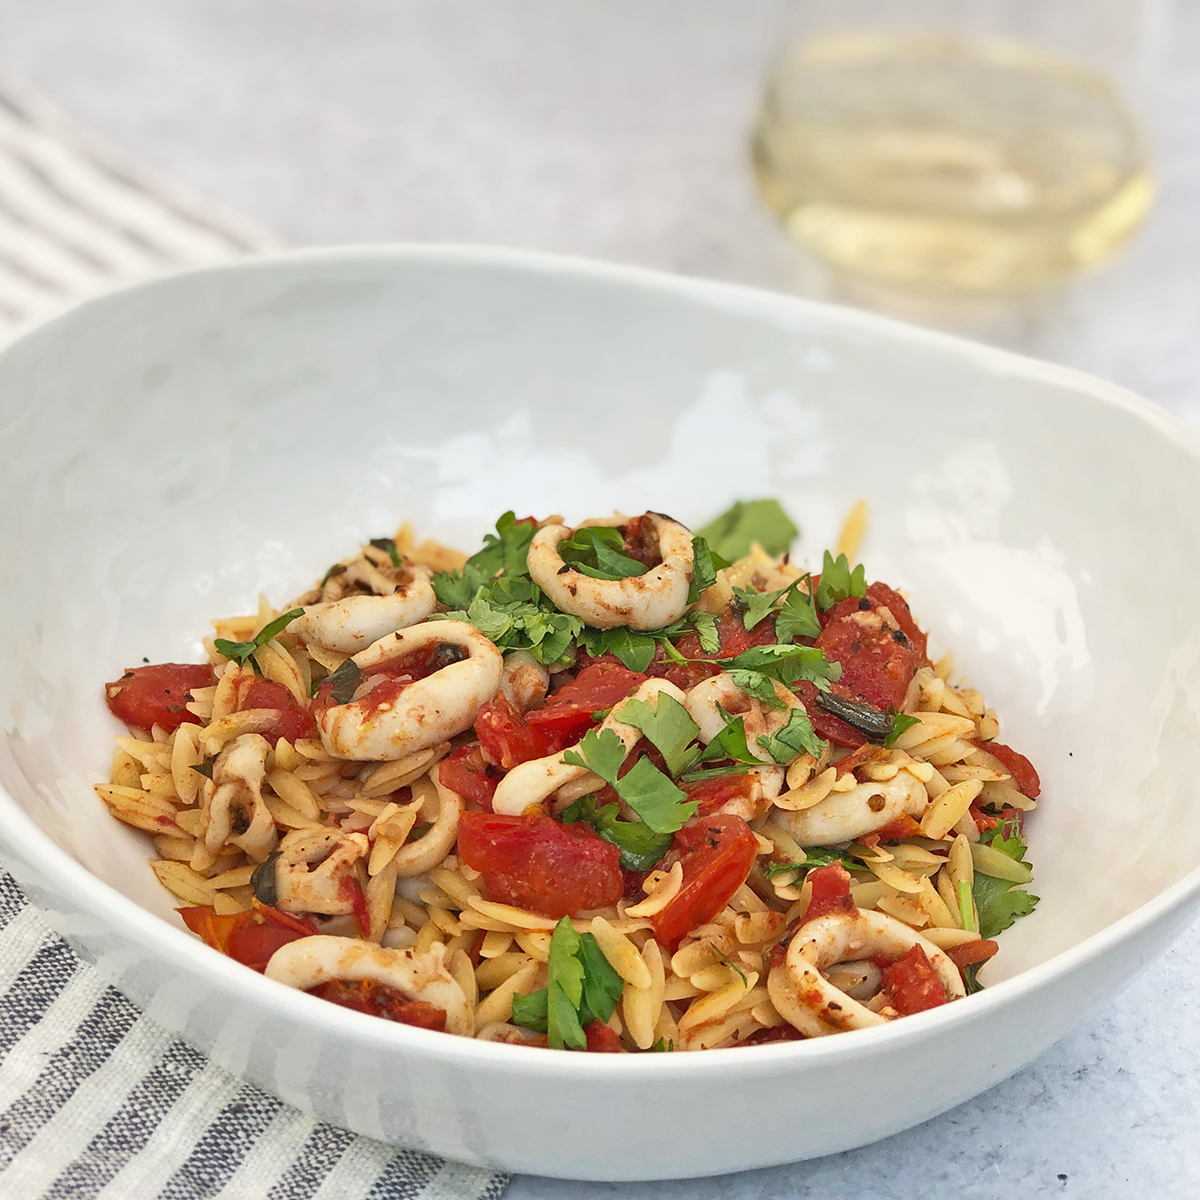 Orzo Pasta with Calamari and Tomato on a table with a glass of Sauvignon Blanc